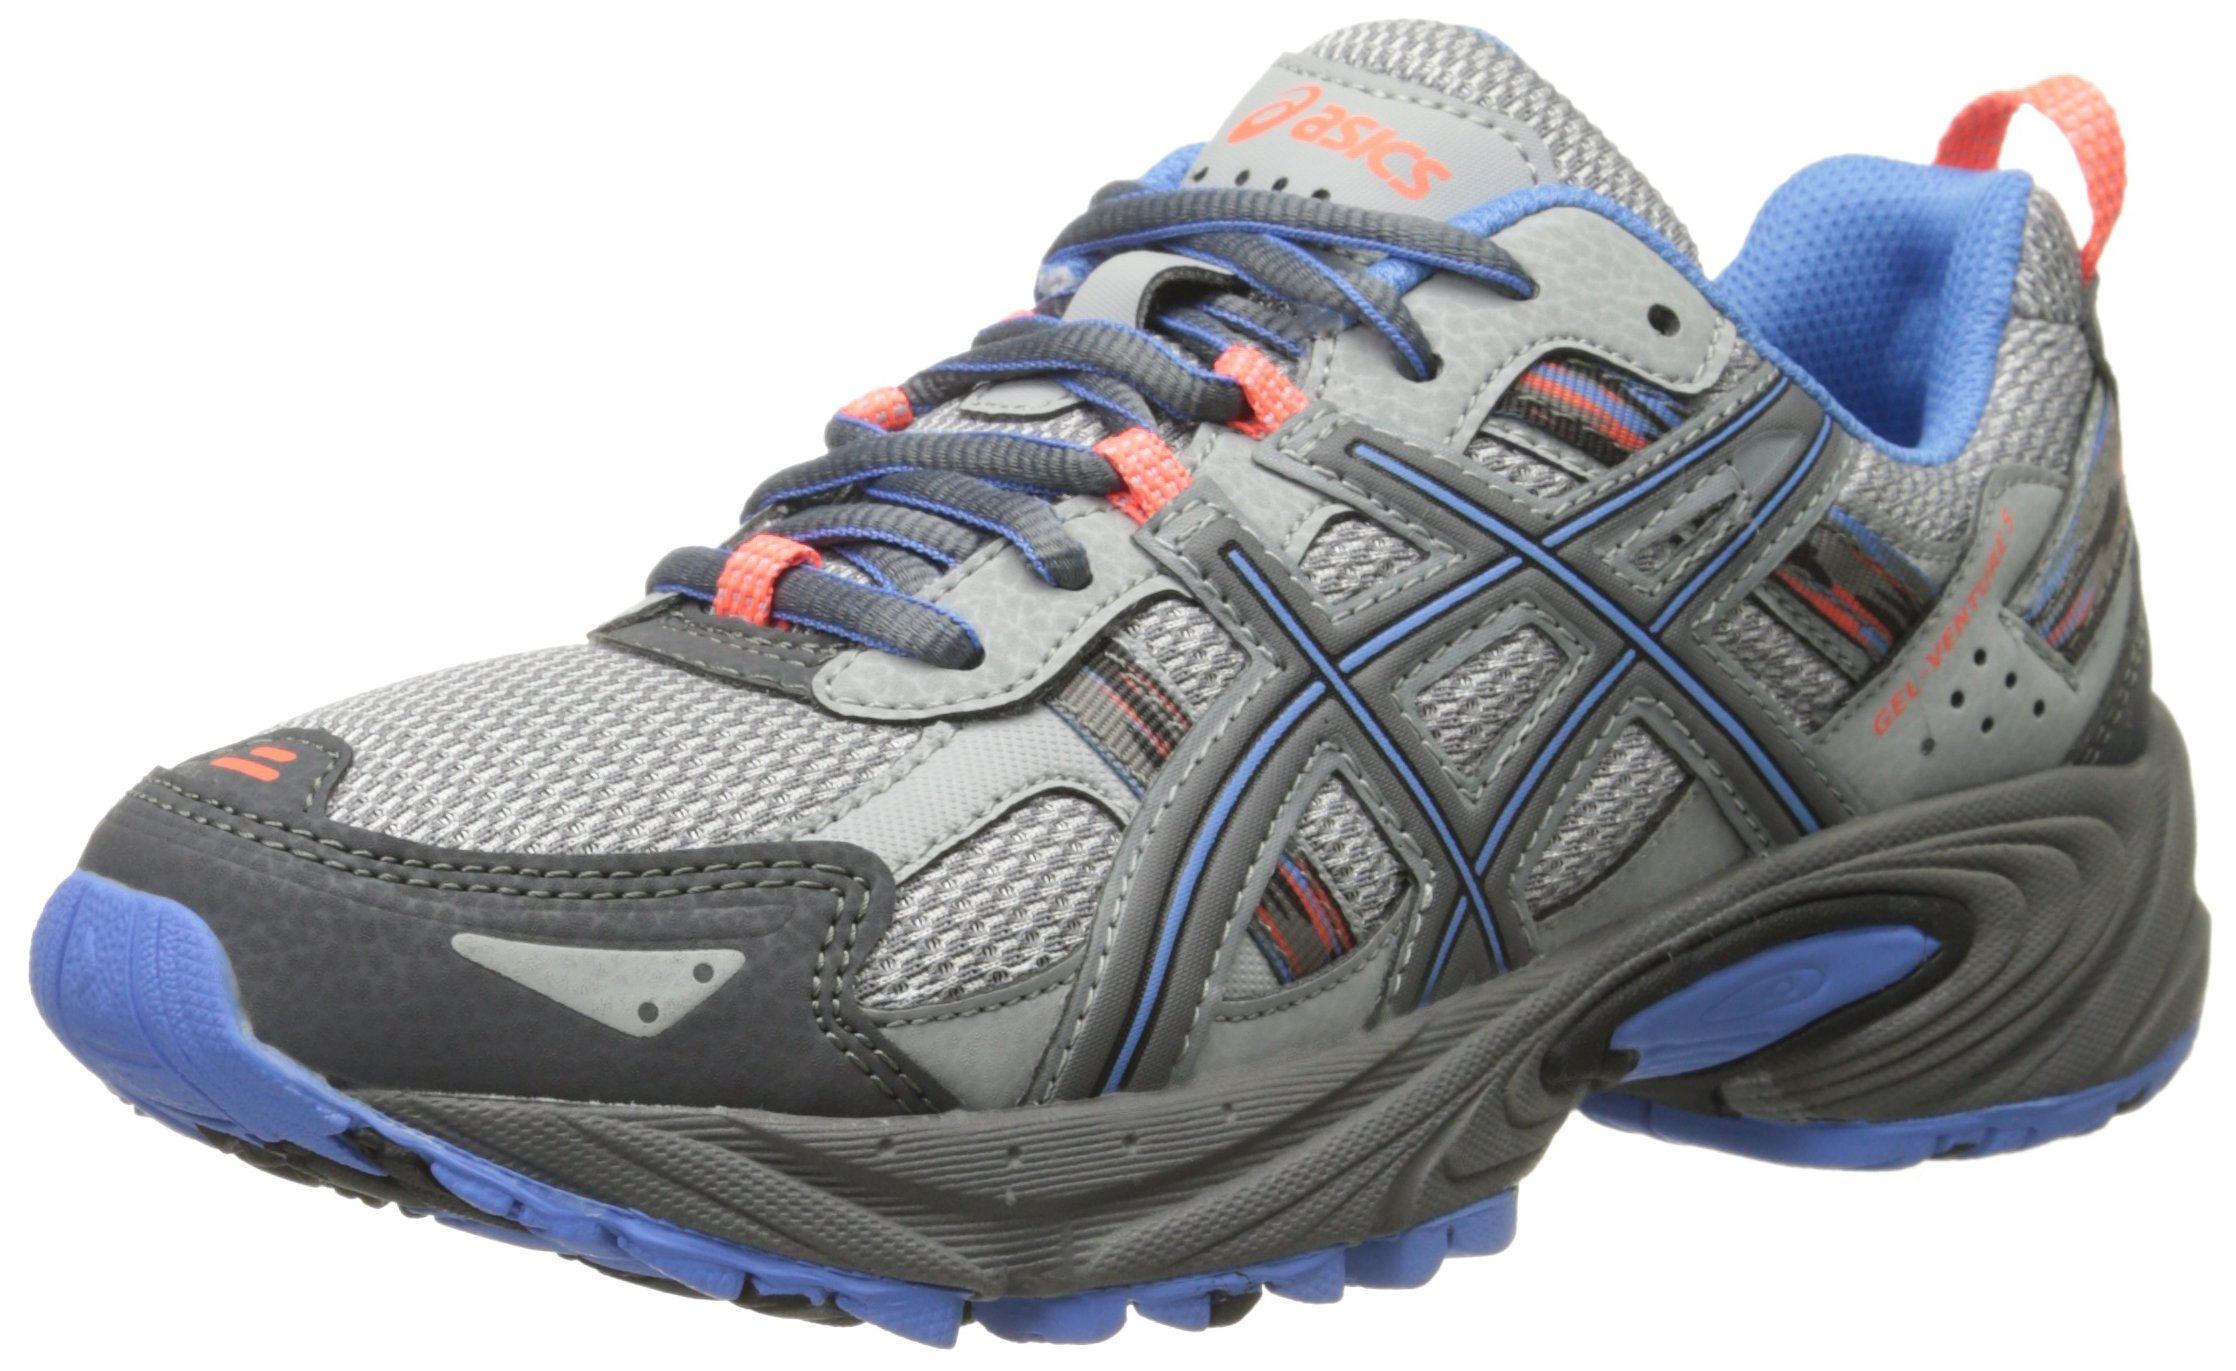 ASICS Women's Gel-Venture 5-W, Silver Grey/Carbon/Dutch Blue, 8.5 M US by ASICS